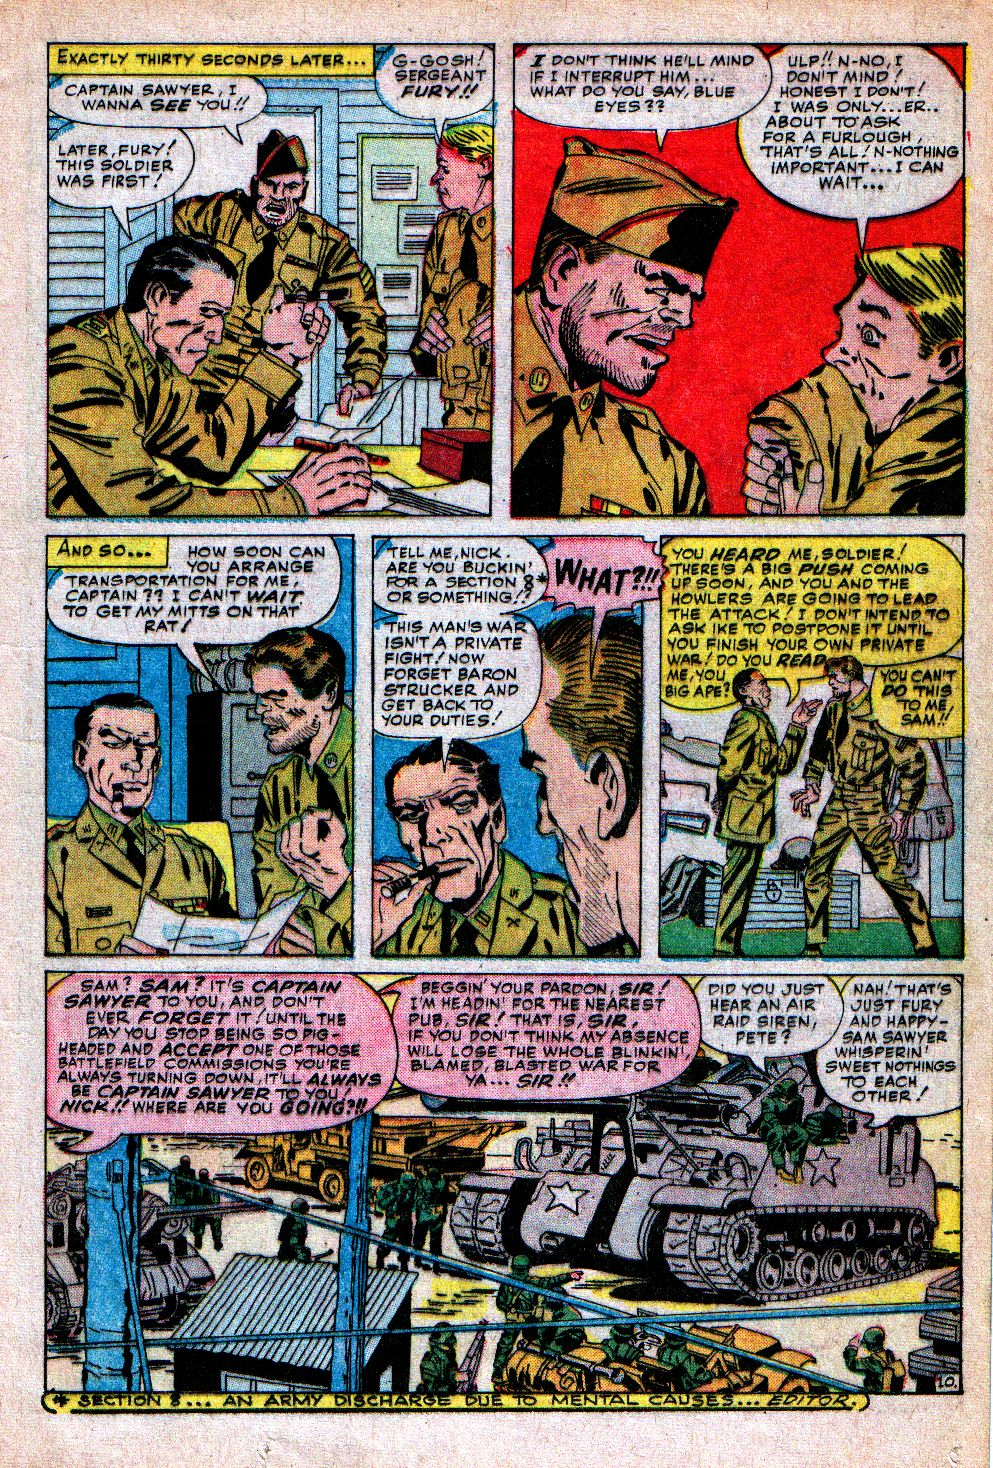 Read online Sgt. Fury comic -  Issue #5 - 13